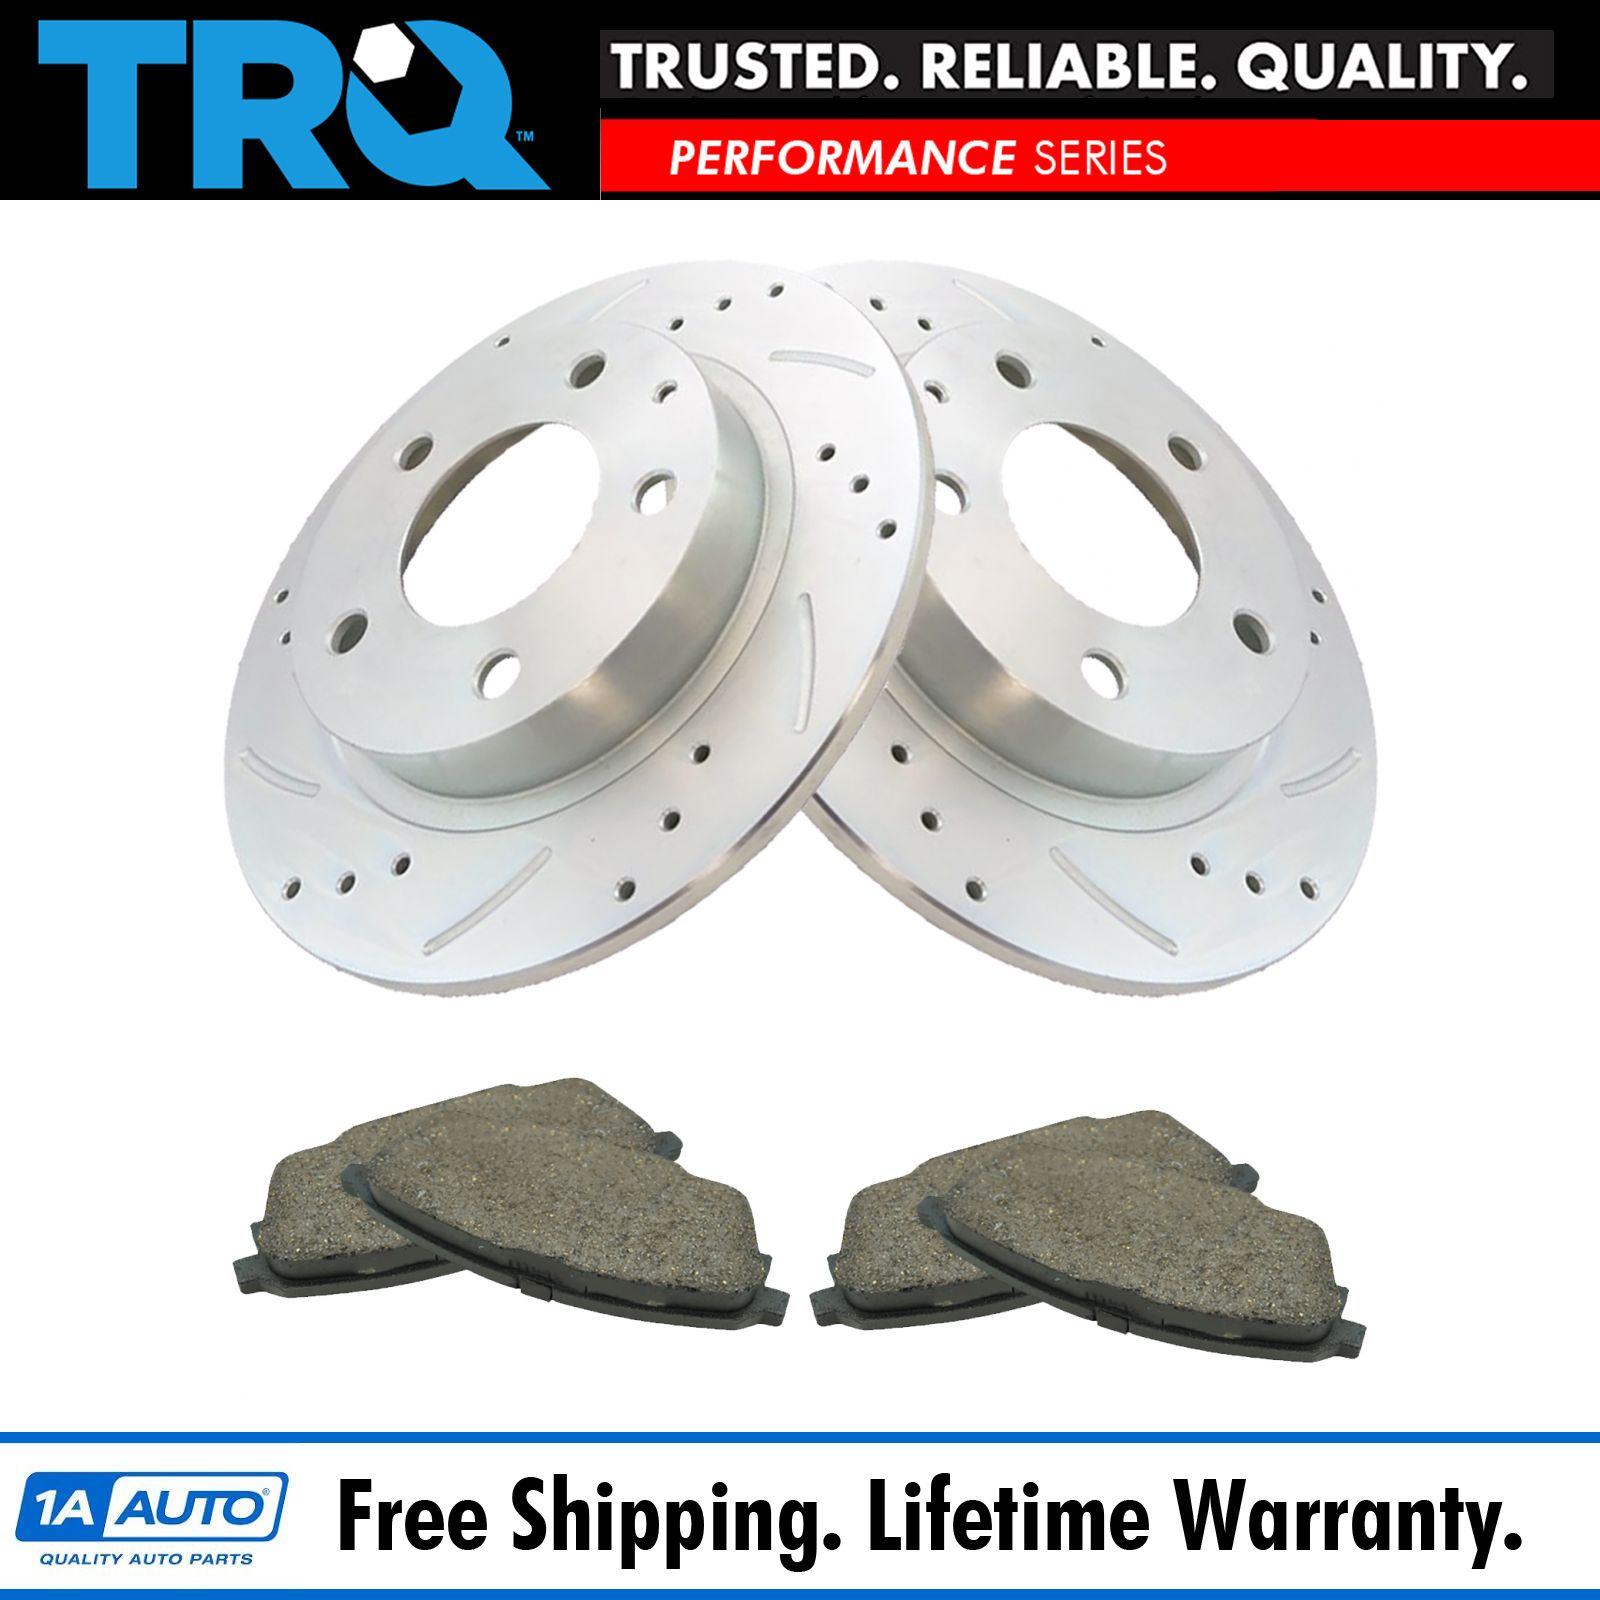 Front+Rear Cross Drilled Rotors /& Ceramic Pads for 2003 Mazda Protege Mazdaspeed